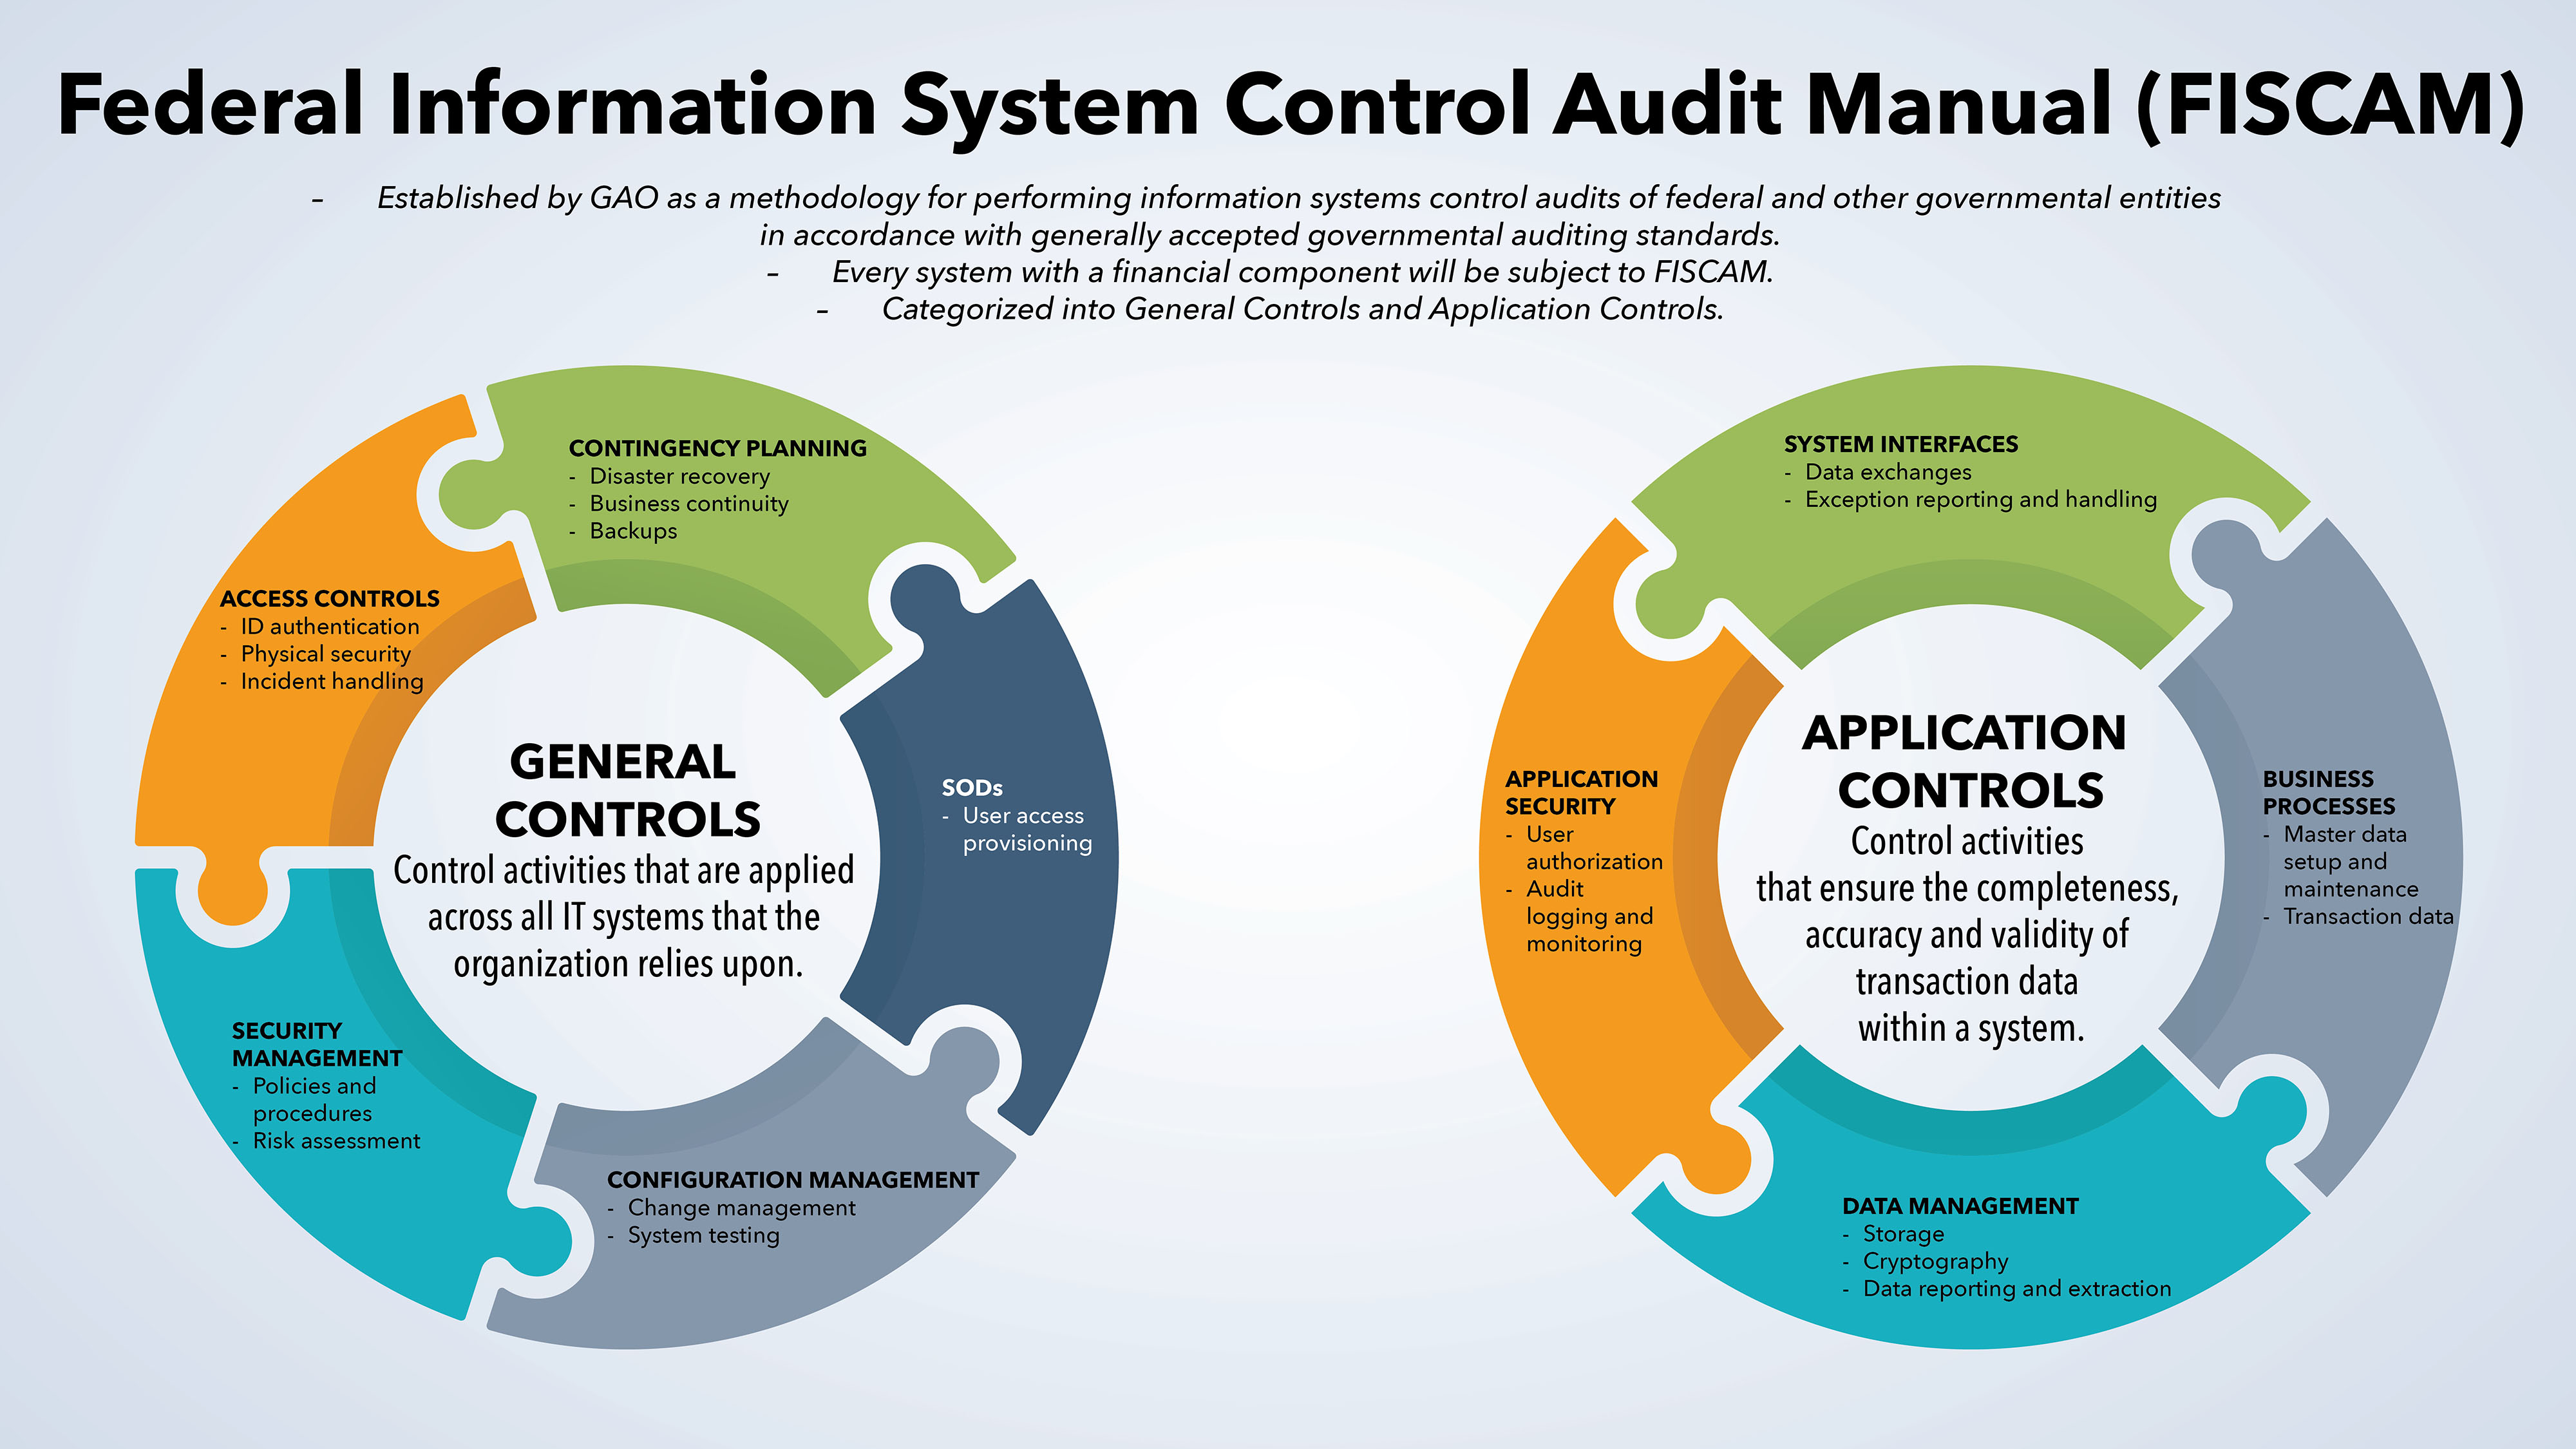 GAO's Federal Information System Controls Audit Manual (FISCAM) provides audit controls applicable to all federal financial management systems. GRC provides an efficient way for Army commands and the GFEBS team to comply with FISCAM and other mandatory audit controls for system access.